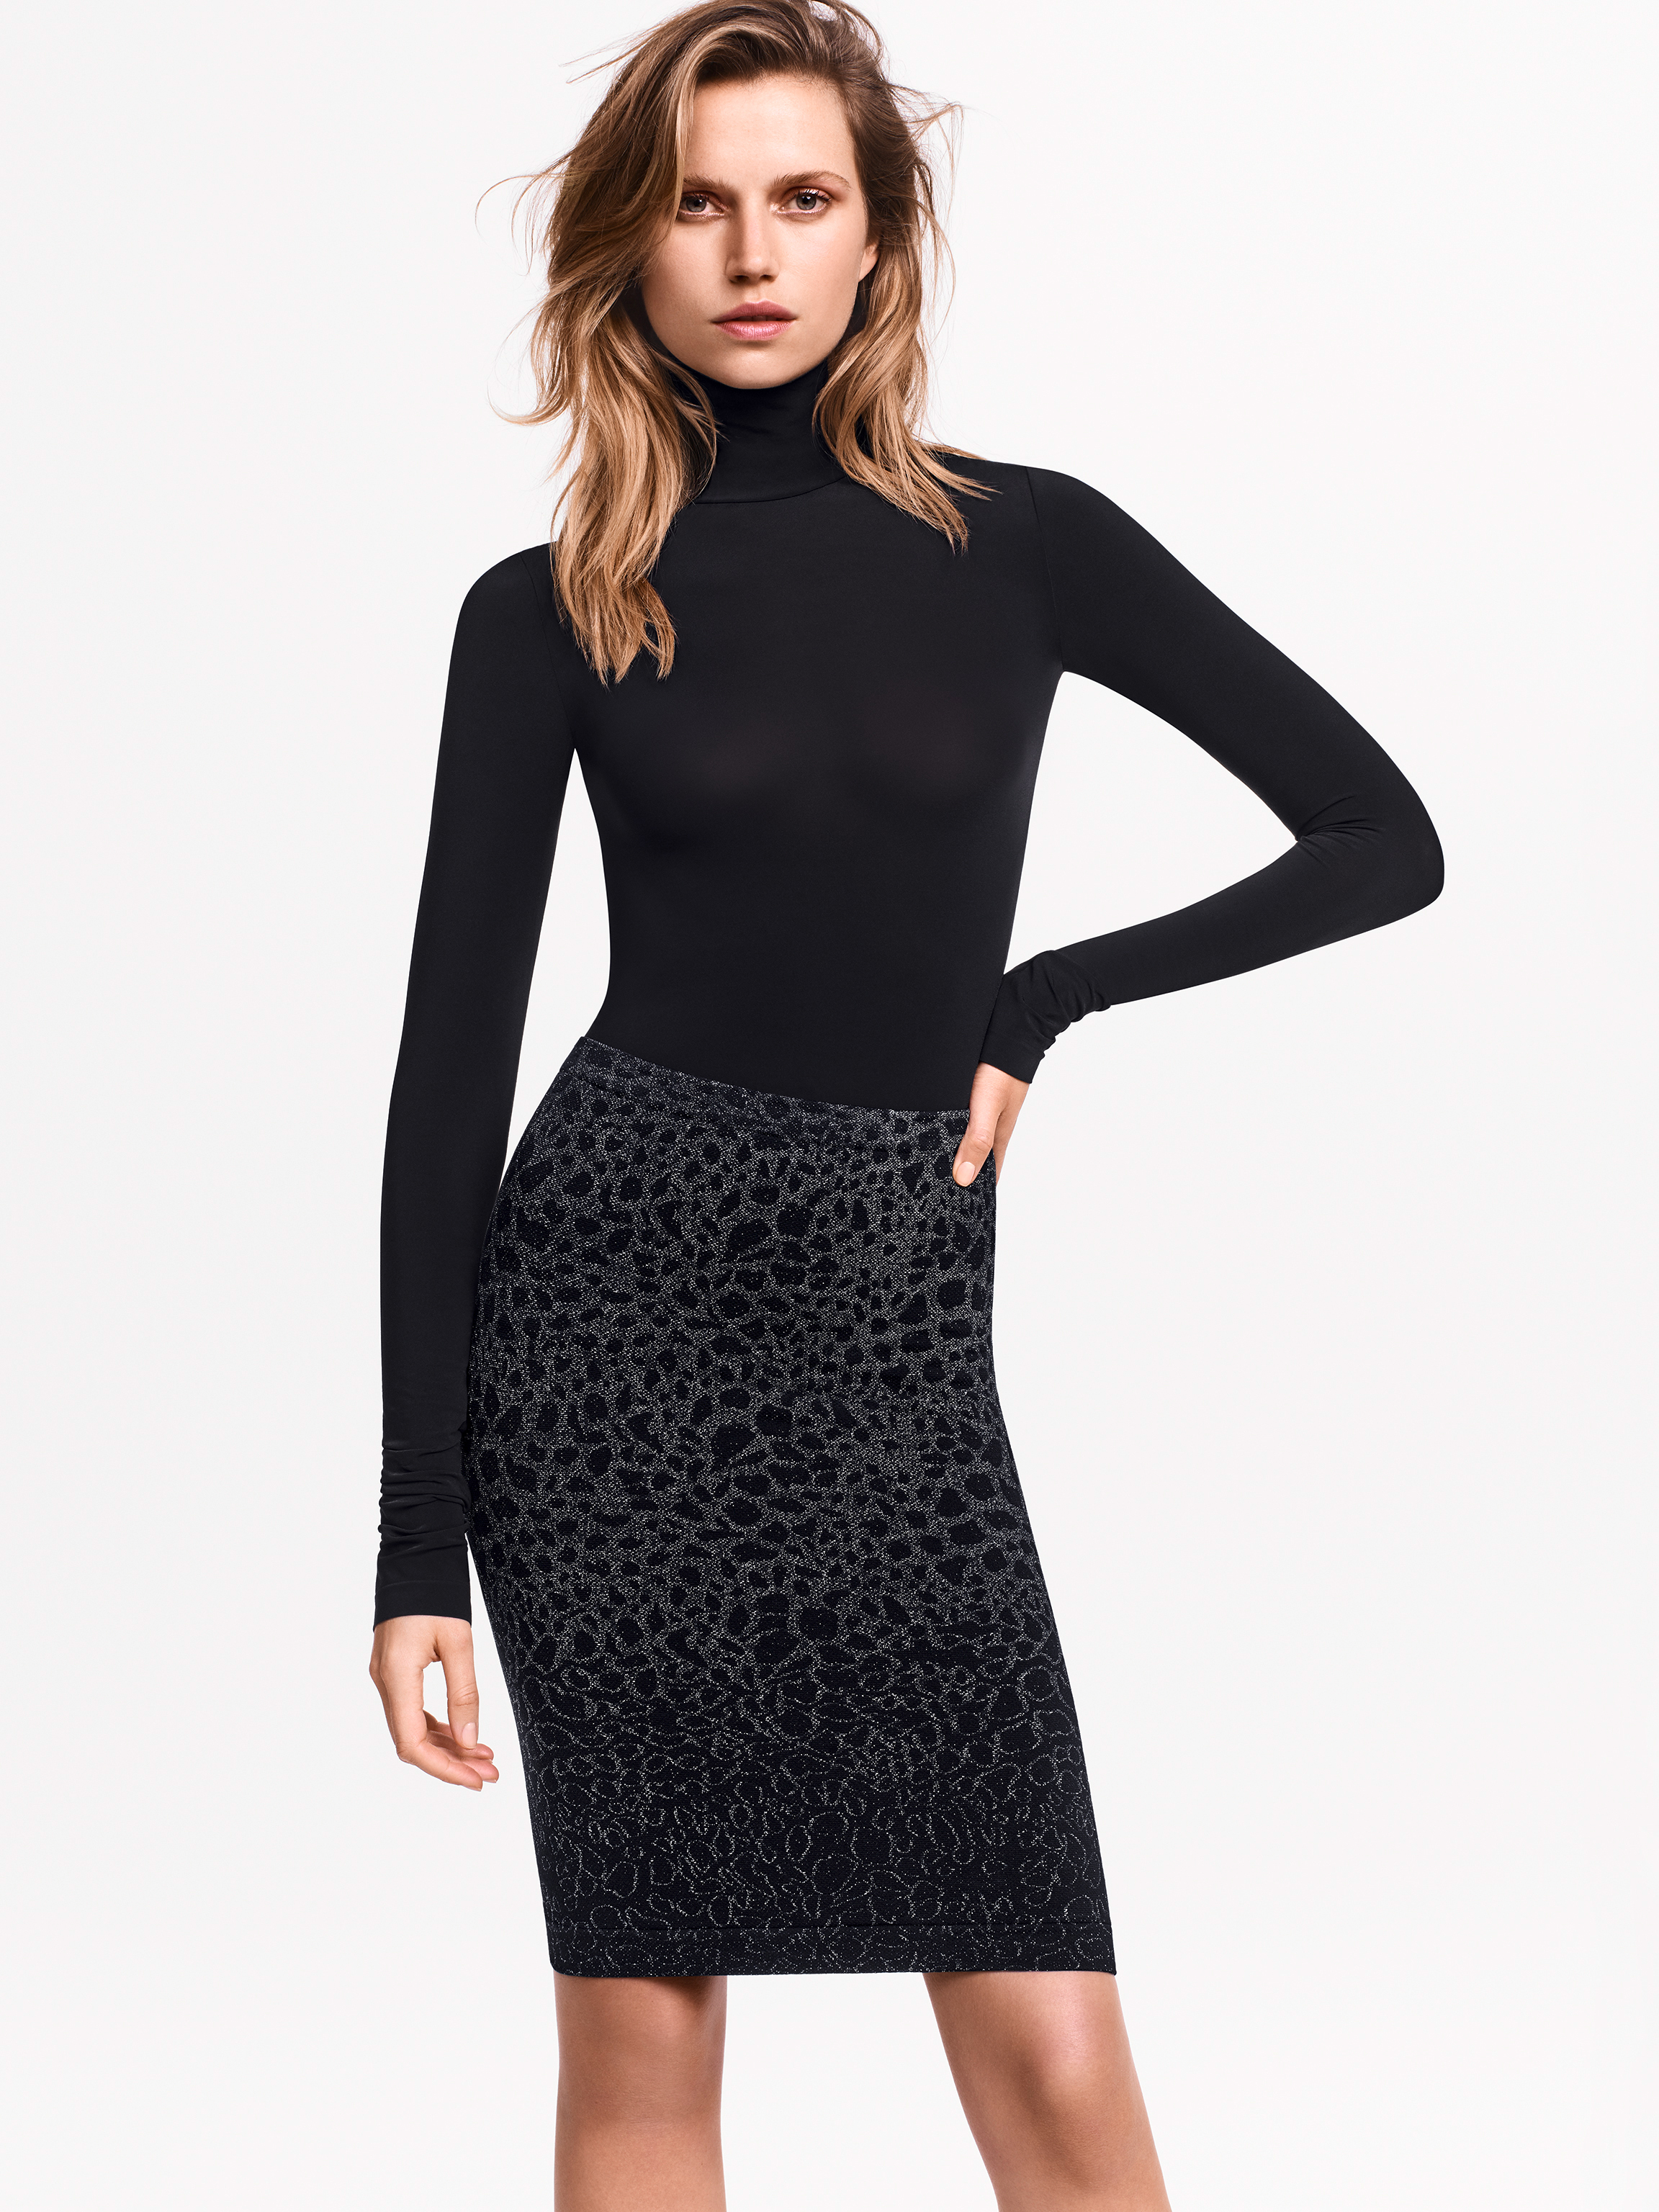 Wolford Apparel & Accessories > Clothing > Abbigliamento Donna Ashley Skirt - 7124 - M